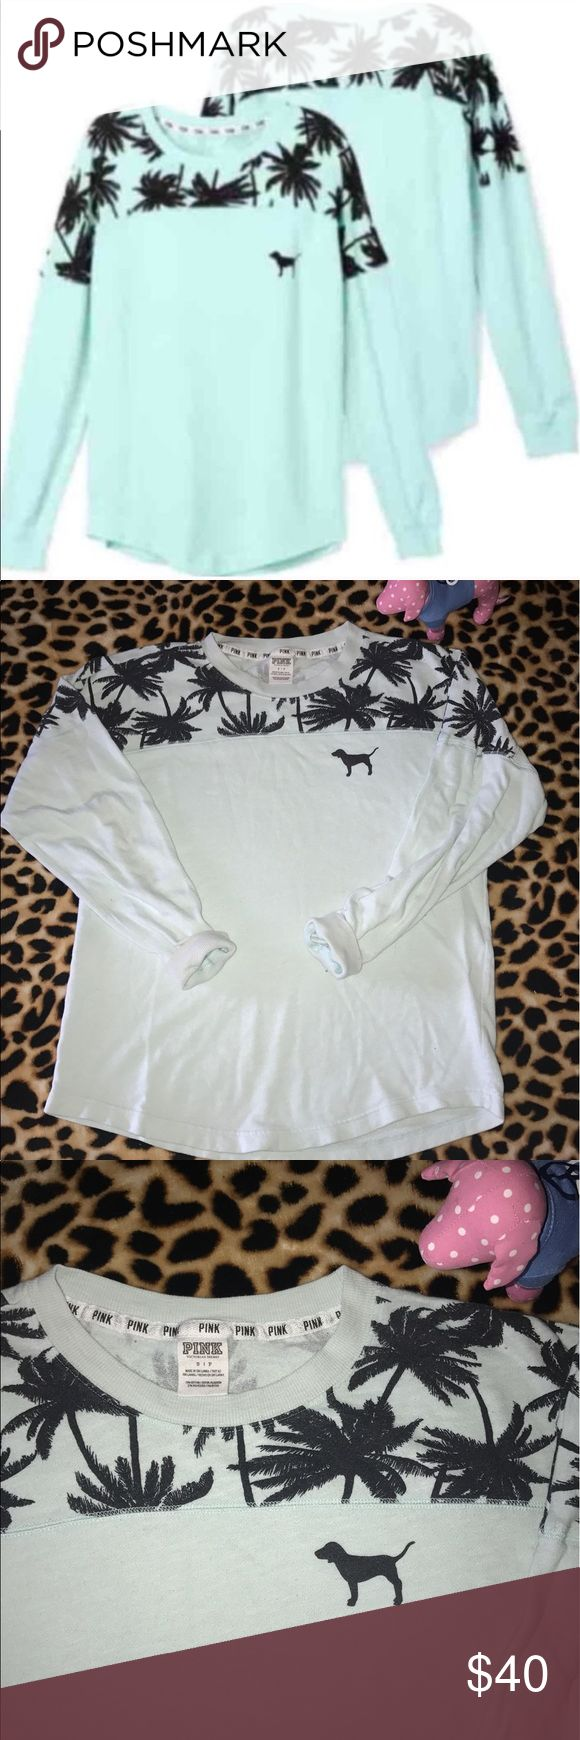 Victoria's Secret PINK Tropical Crew GUC S Good Used Condition *Doggie NOT Included!* Size SMALL Fits True To Size with a little room like the VS PINK crews usually do. The only flaw is some pilling from wash/wear. This is a lightweight crew made of French terry. It's perfect to wear on cool summer days or at night when it gets cooler. Or you can throw it on after a swim, with  🌴 palm tree accents on the shoulders it's perfect! Date tag says 12/14 so this would have been from PINK's Spring…